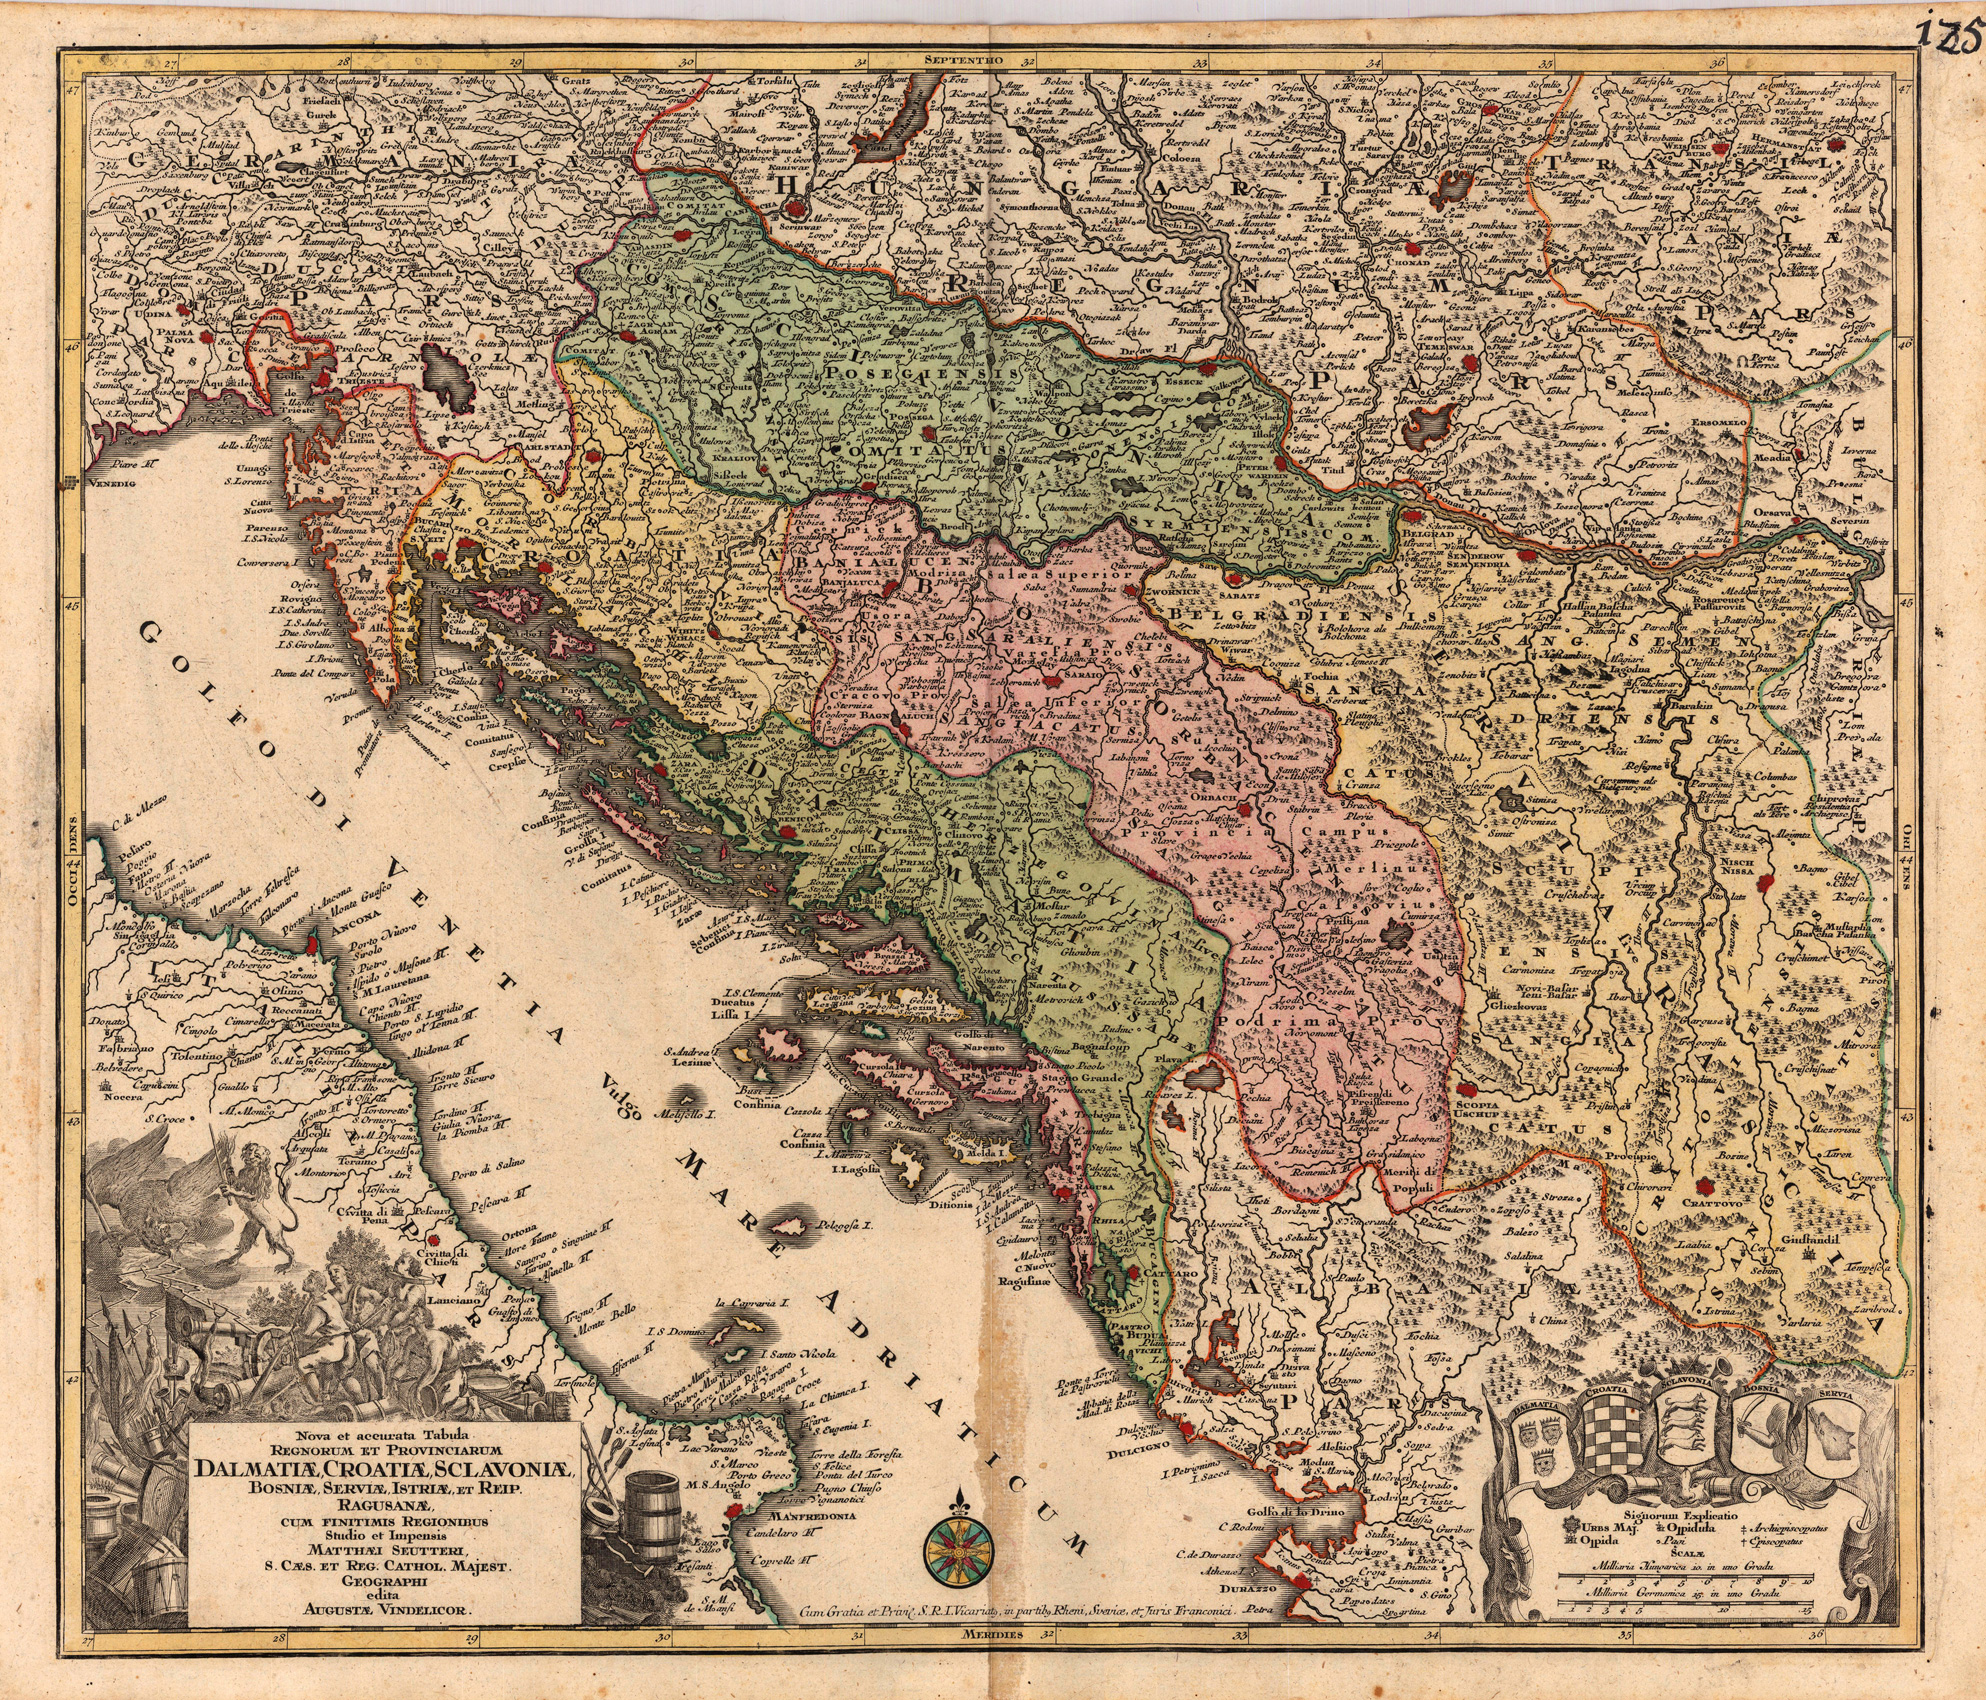 File:Dalmatia, Croatia and Sclavonia (1720).jpg